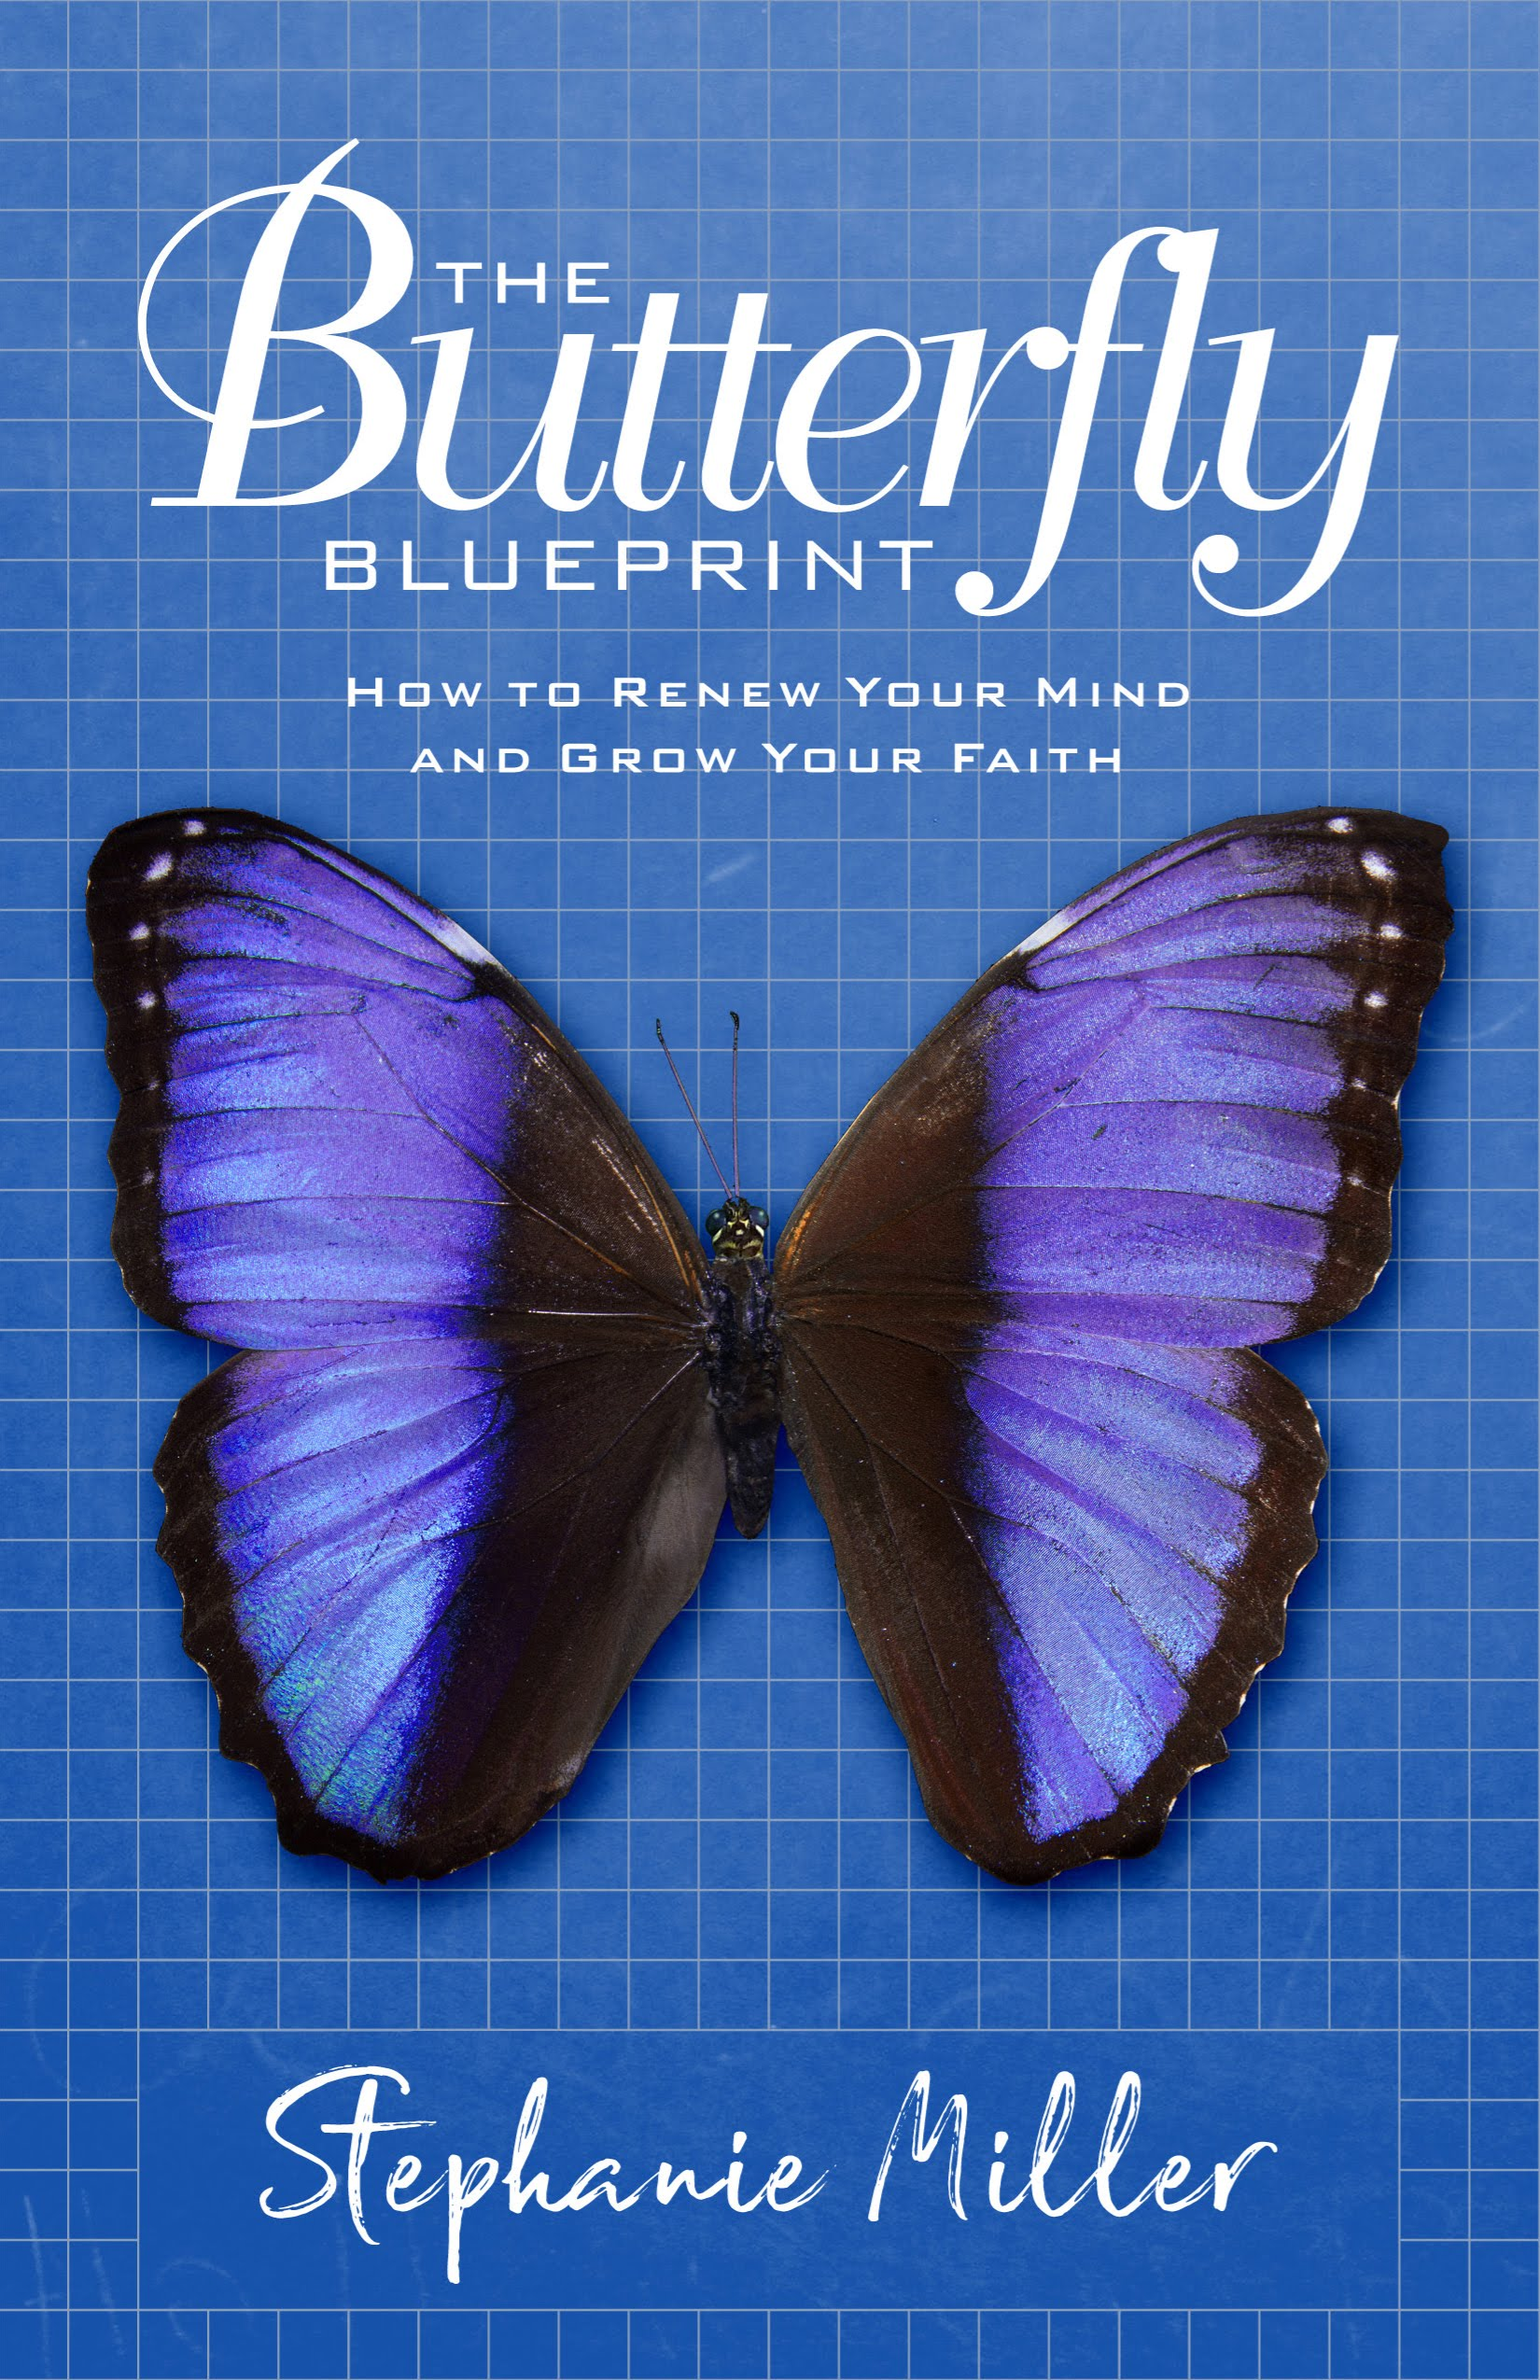 The Butterfly Blueprint cover